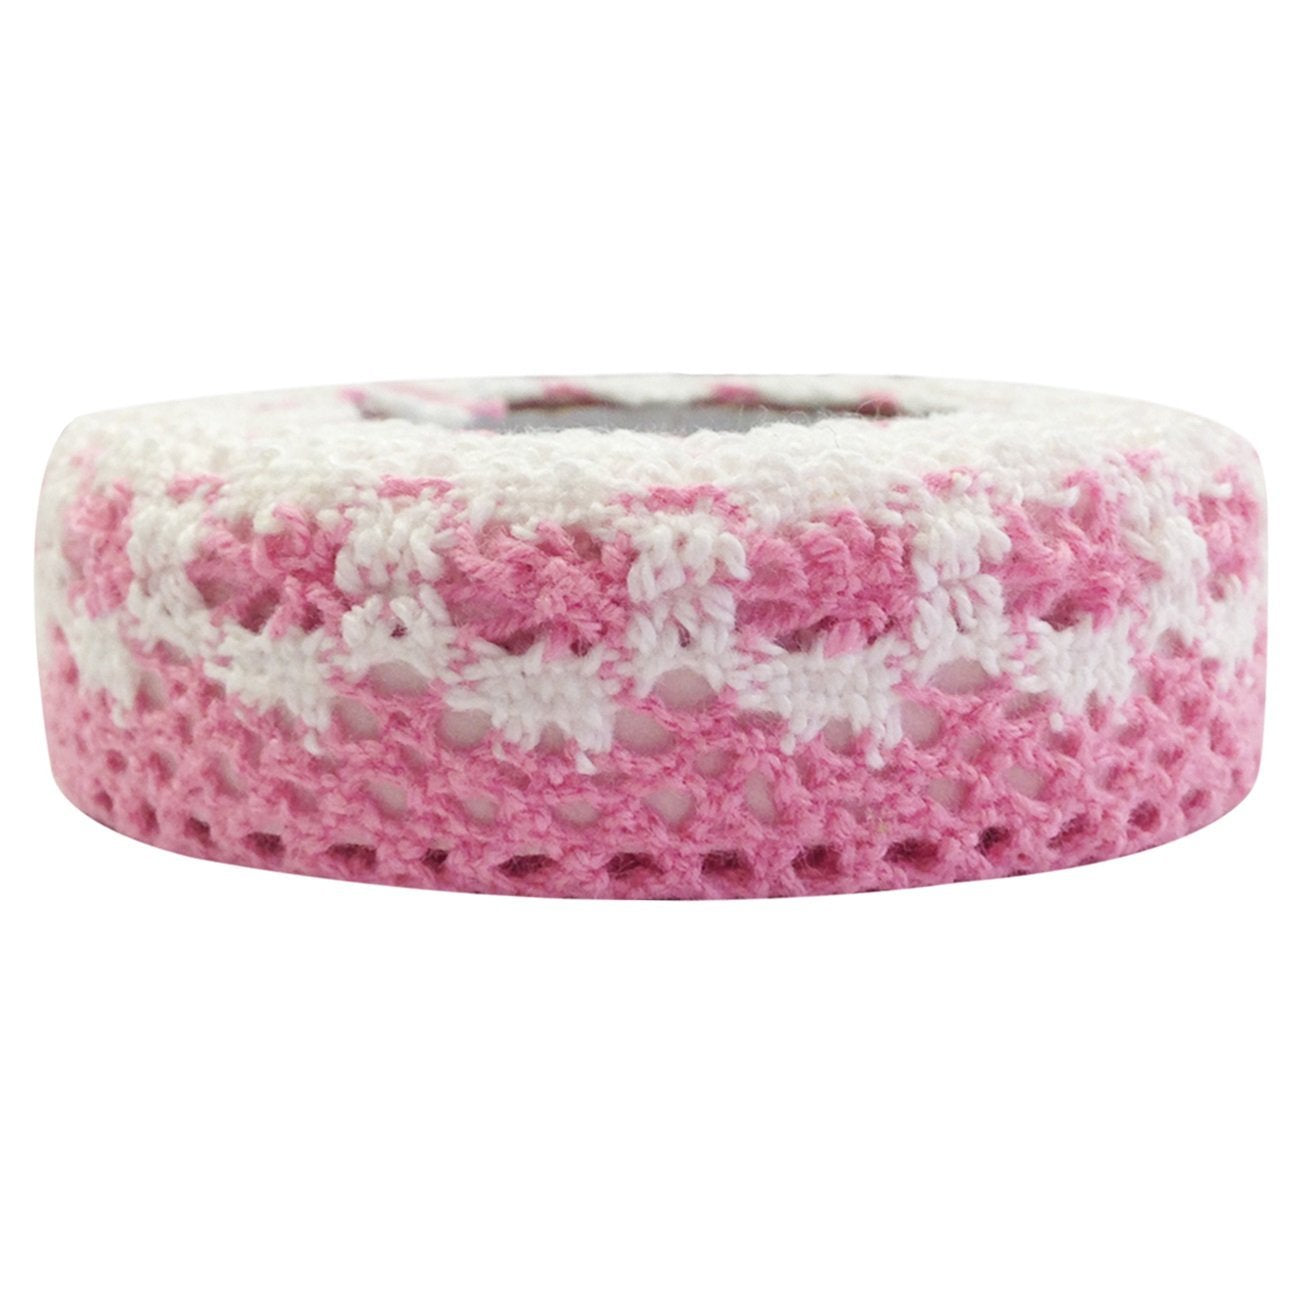 Wrapables Colorful Decorative Adhesive Lace Tape (Set of 3)